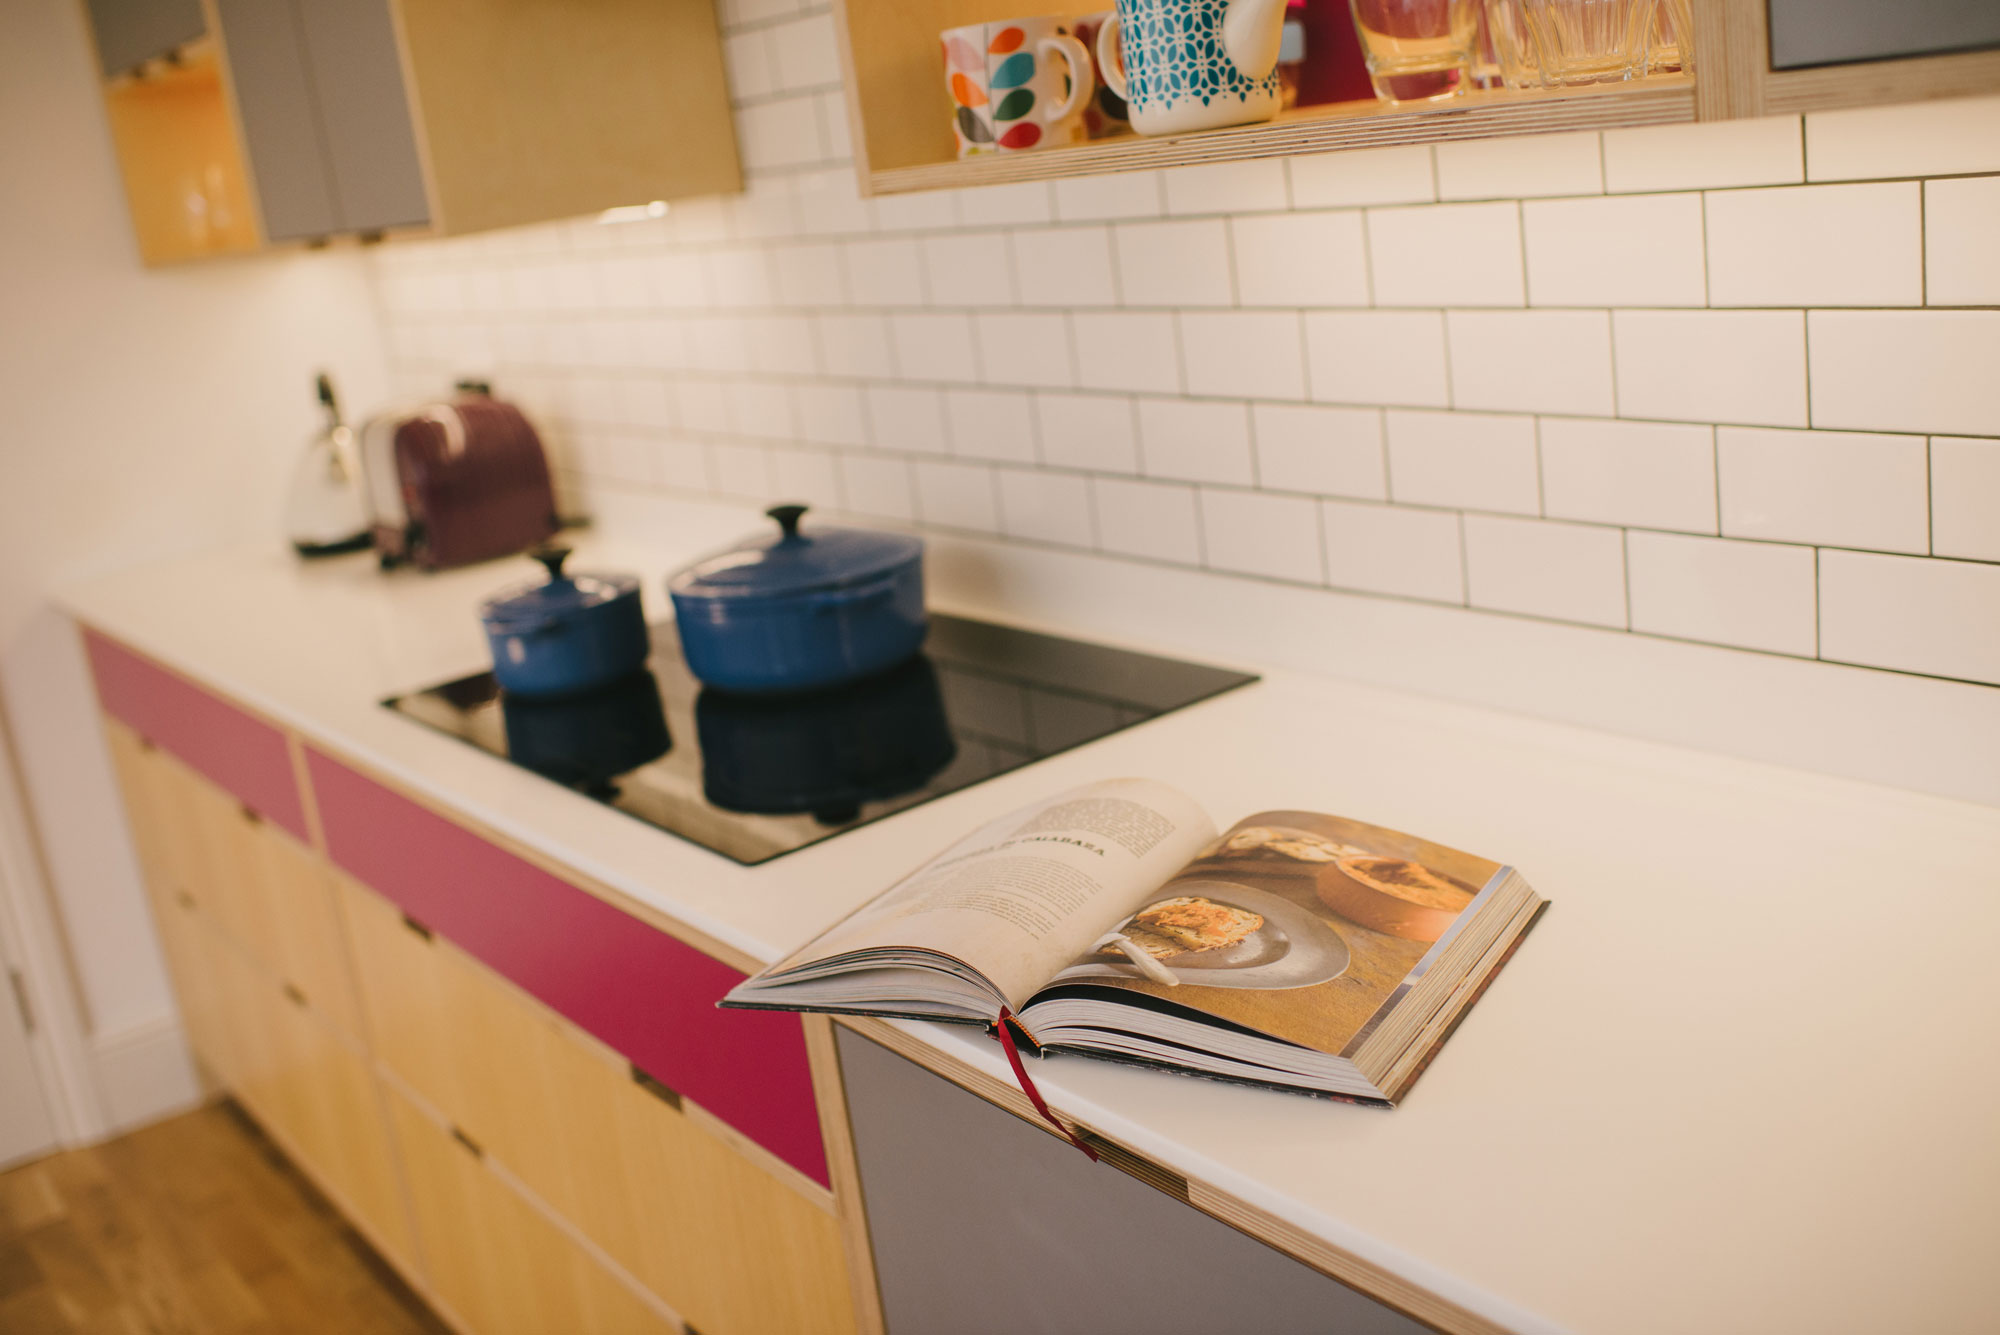 Corian worktop of pink and grey plywood kitchen